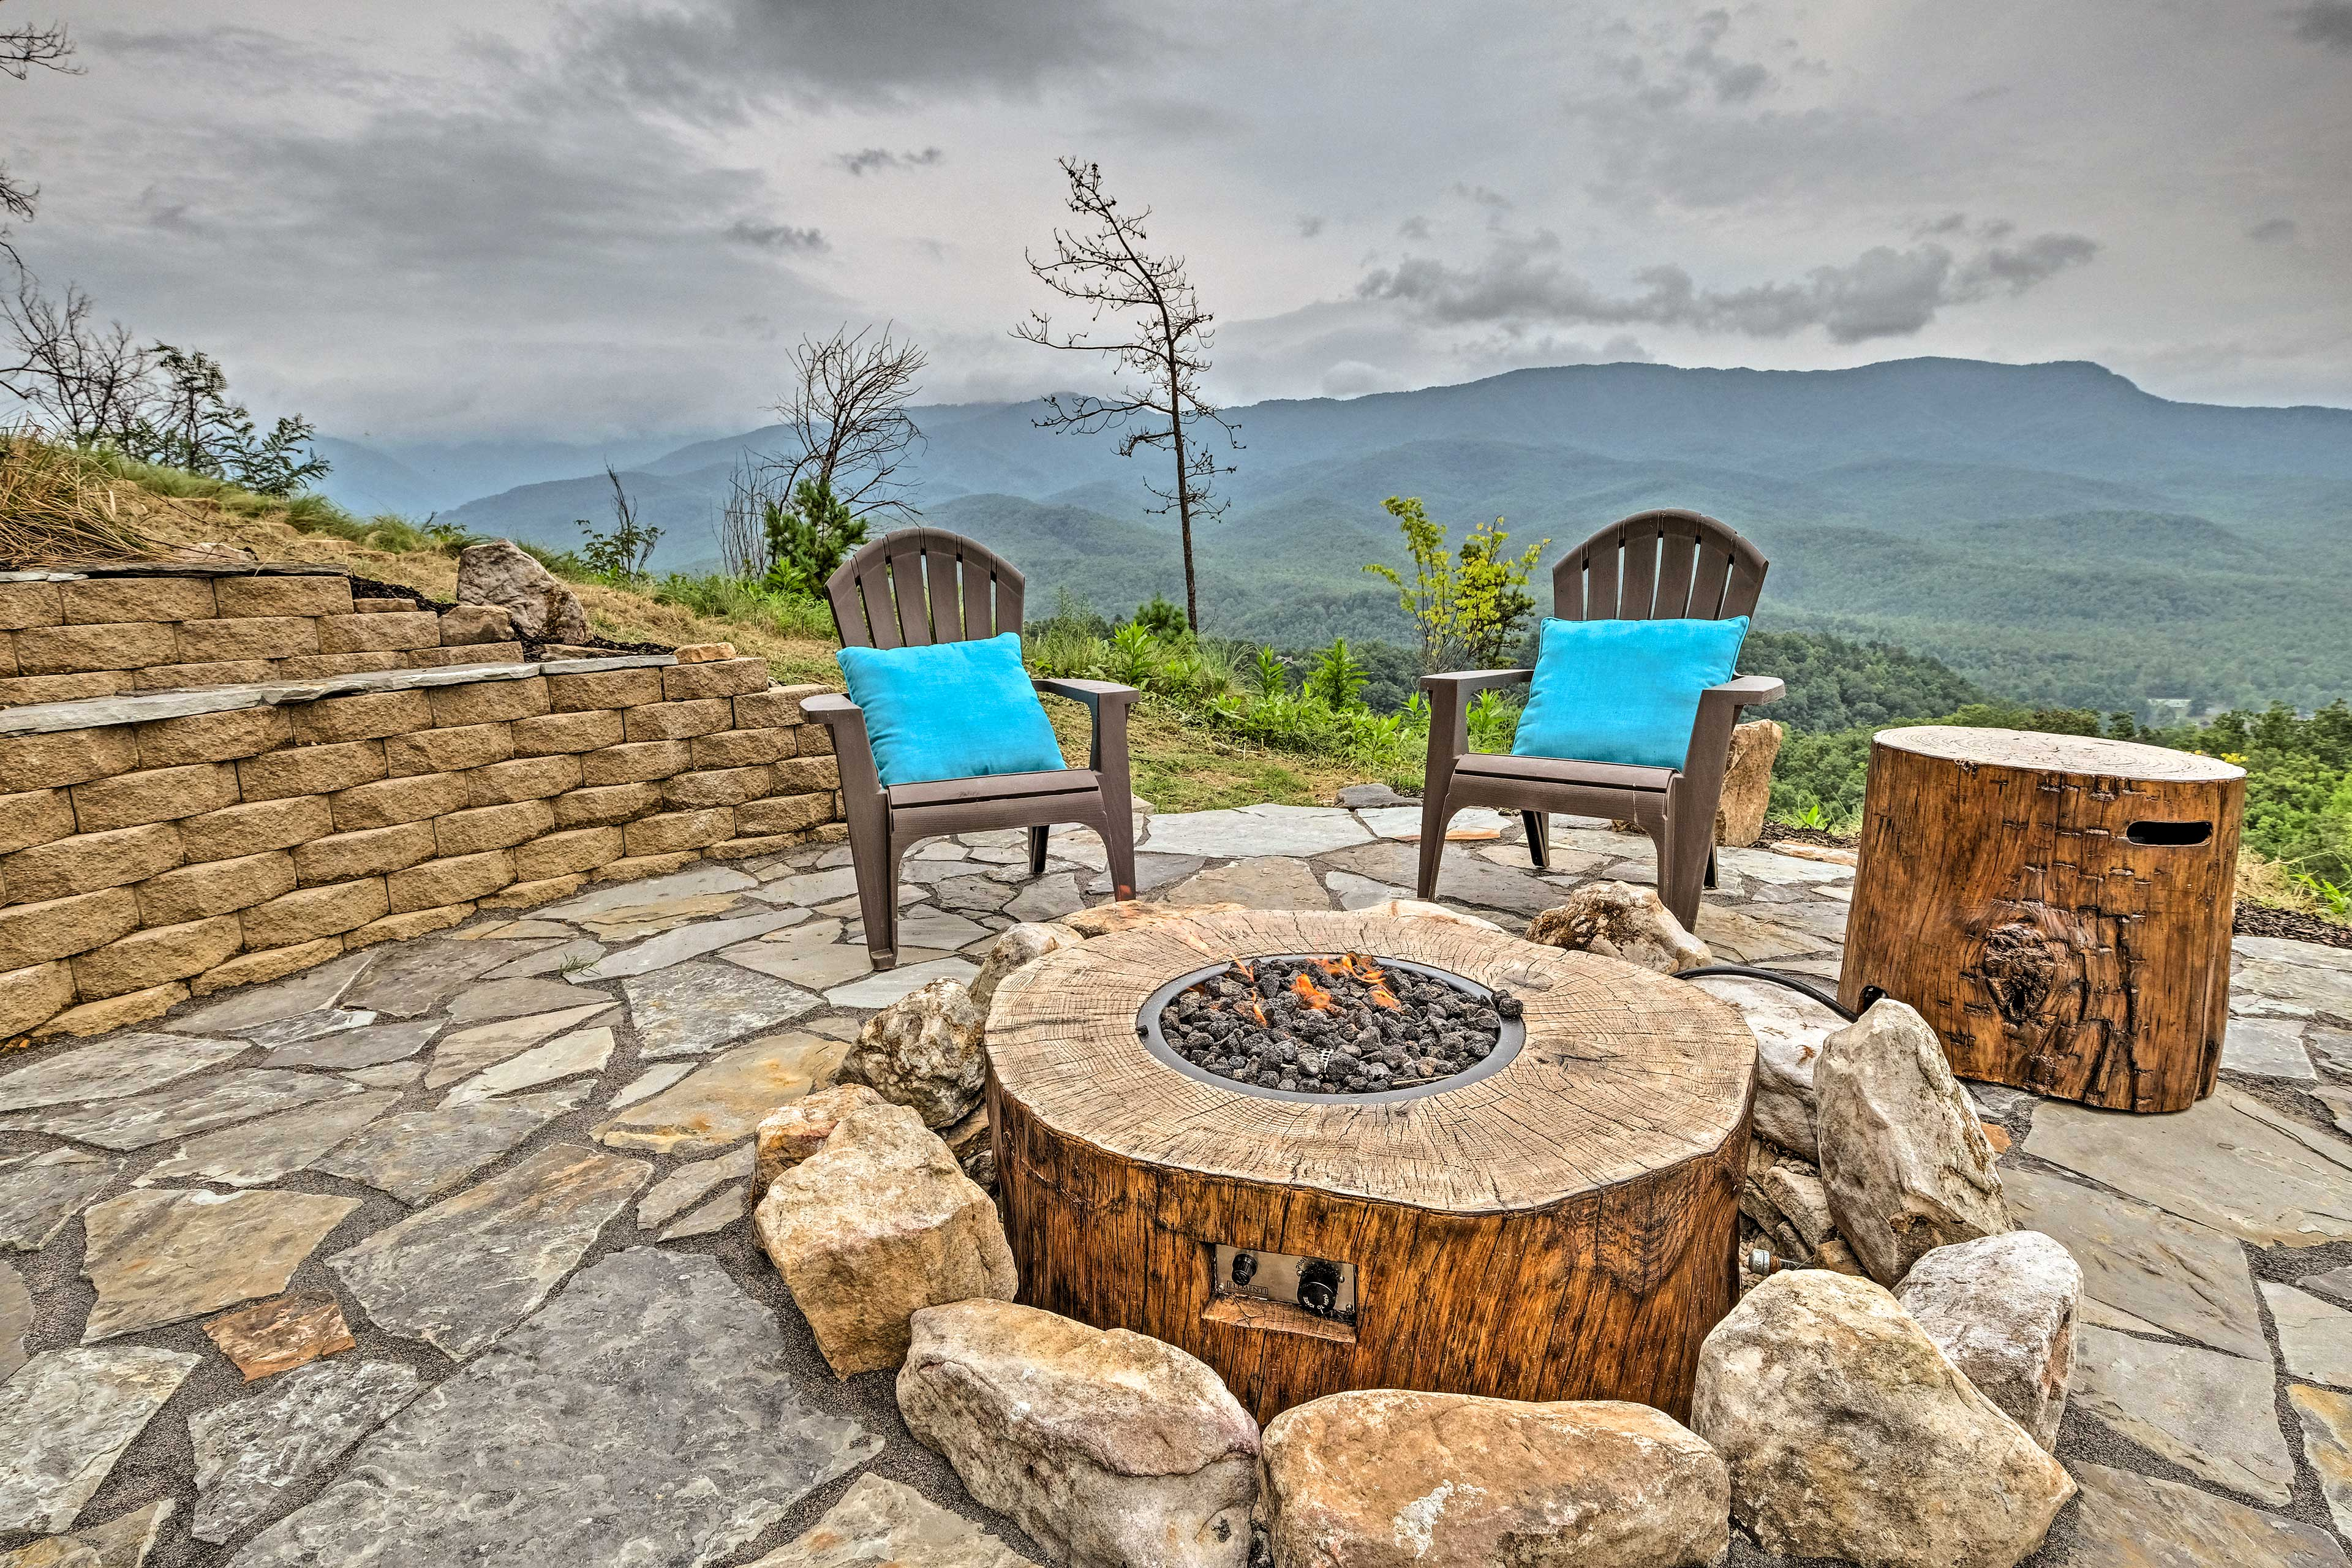 This rustic fire pit is both beautiful and useful.